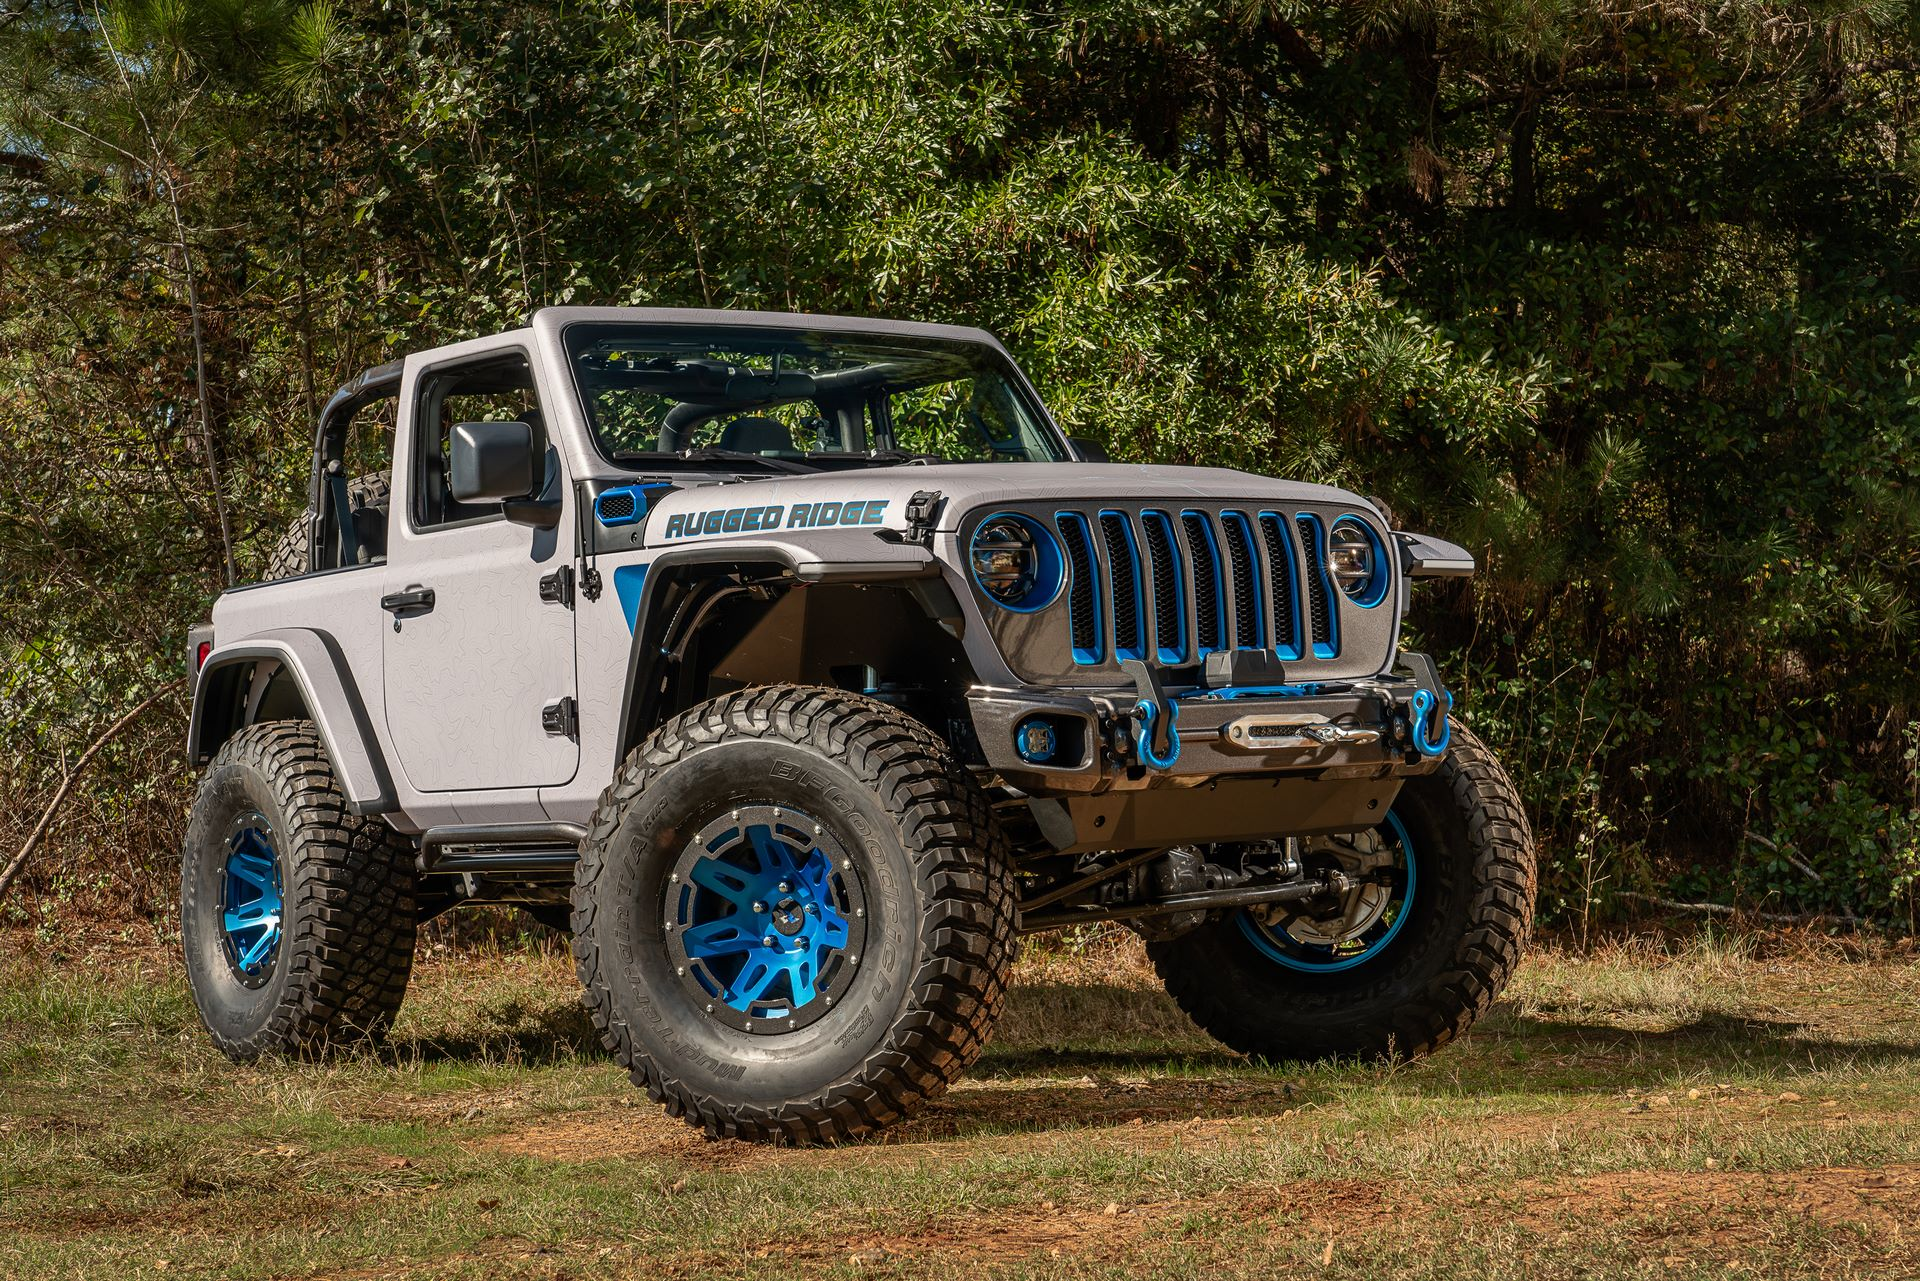 rugged_ridge_jeep_wrangler_rubicon_sema_2019_015